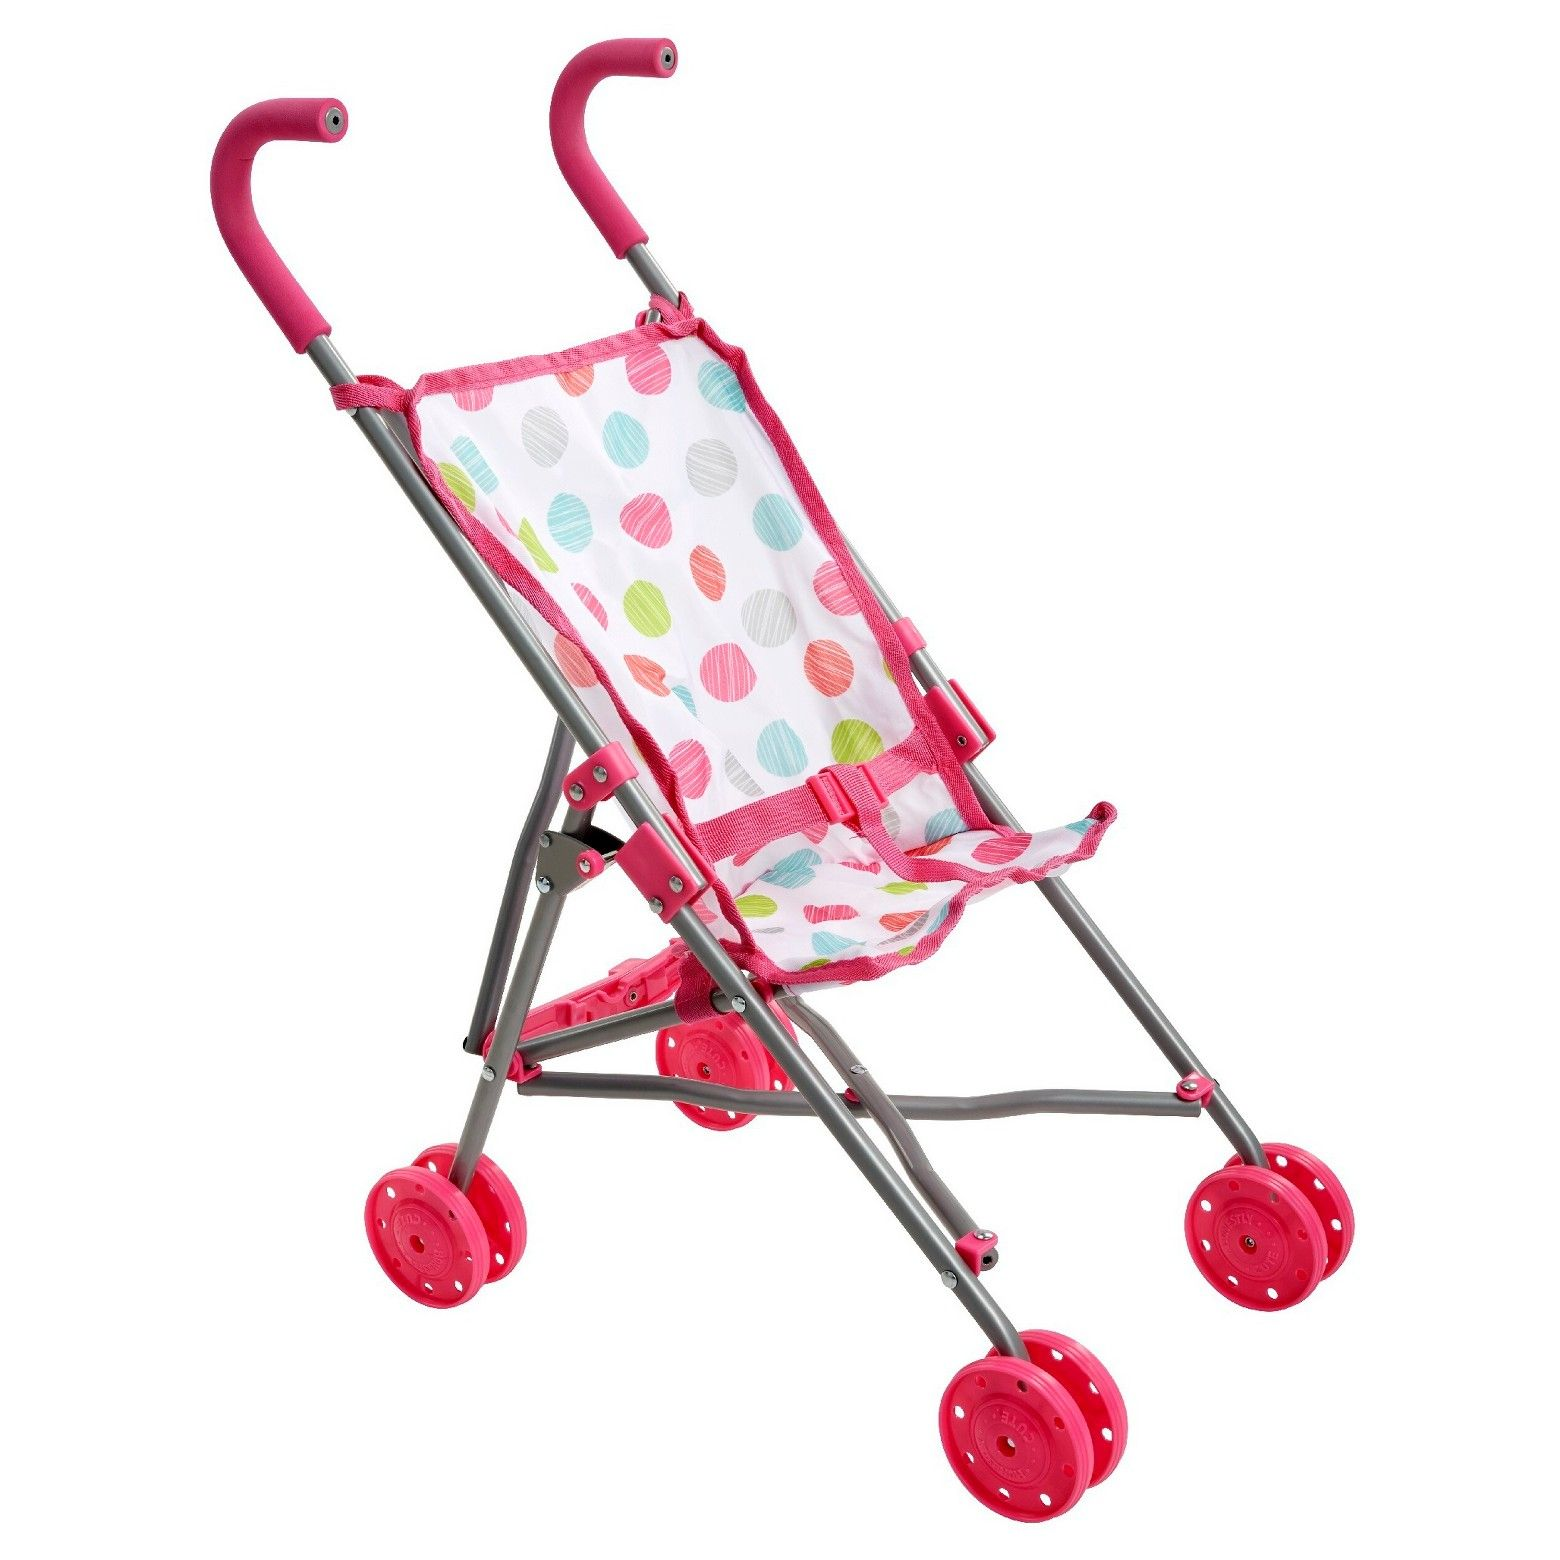 •This baby doll stroller can easily be cleaned with a damp